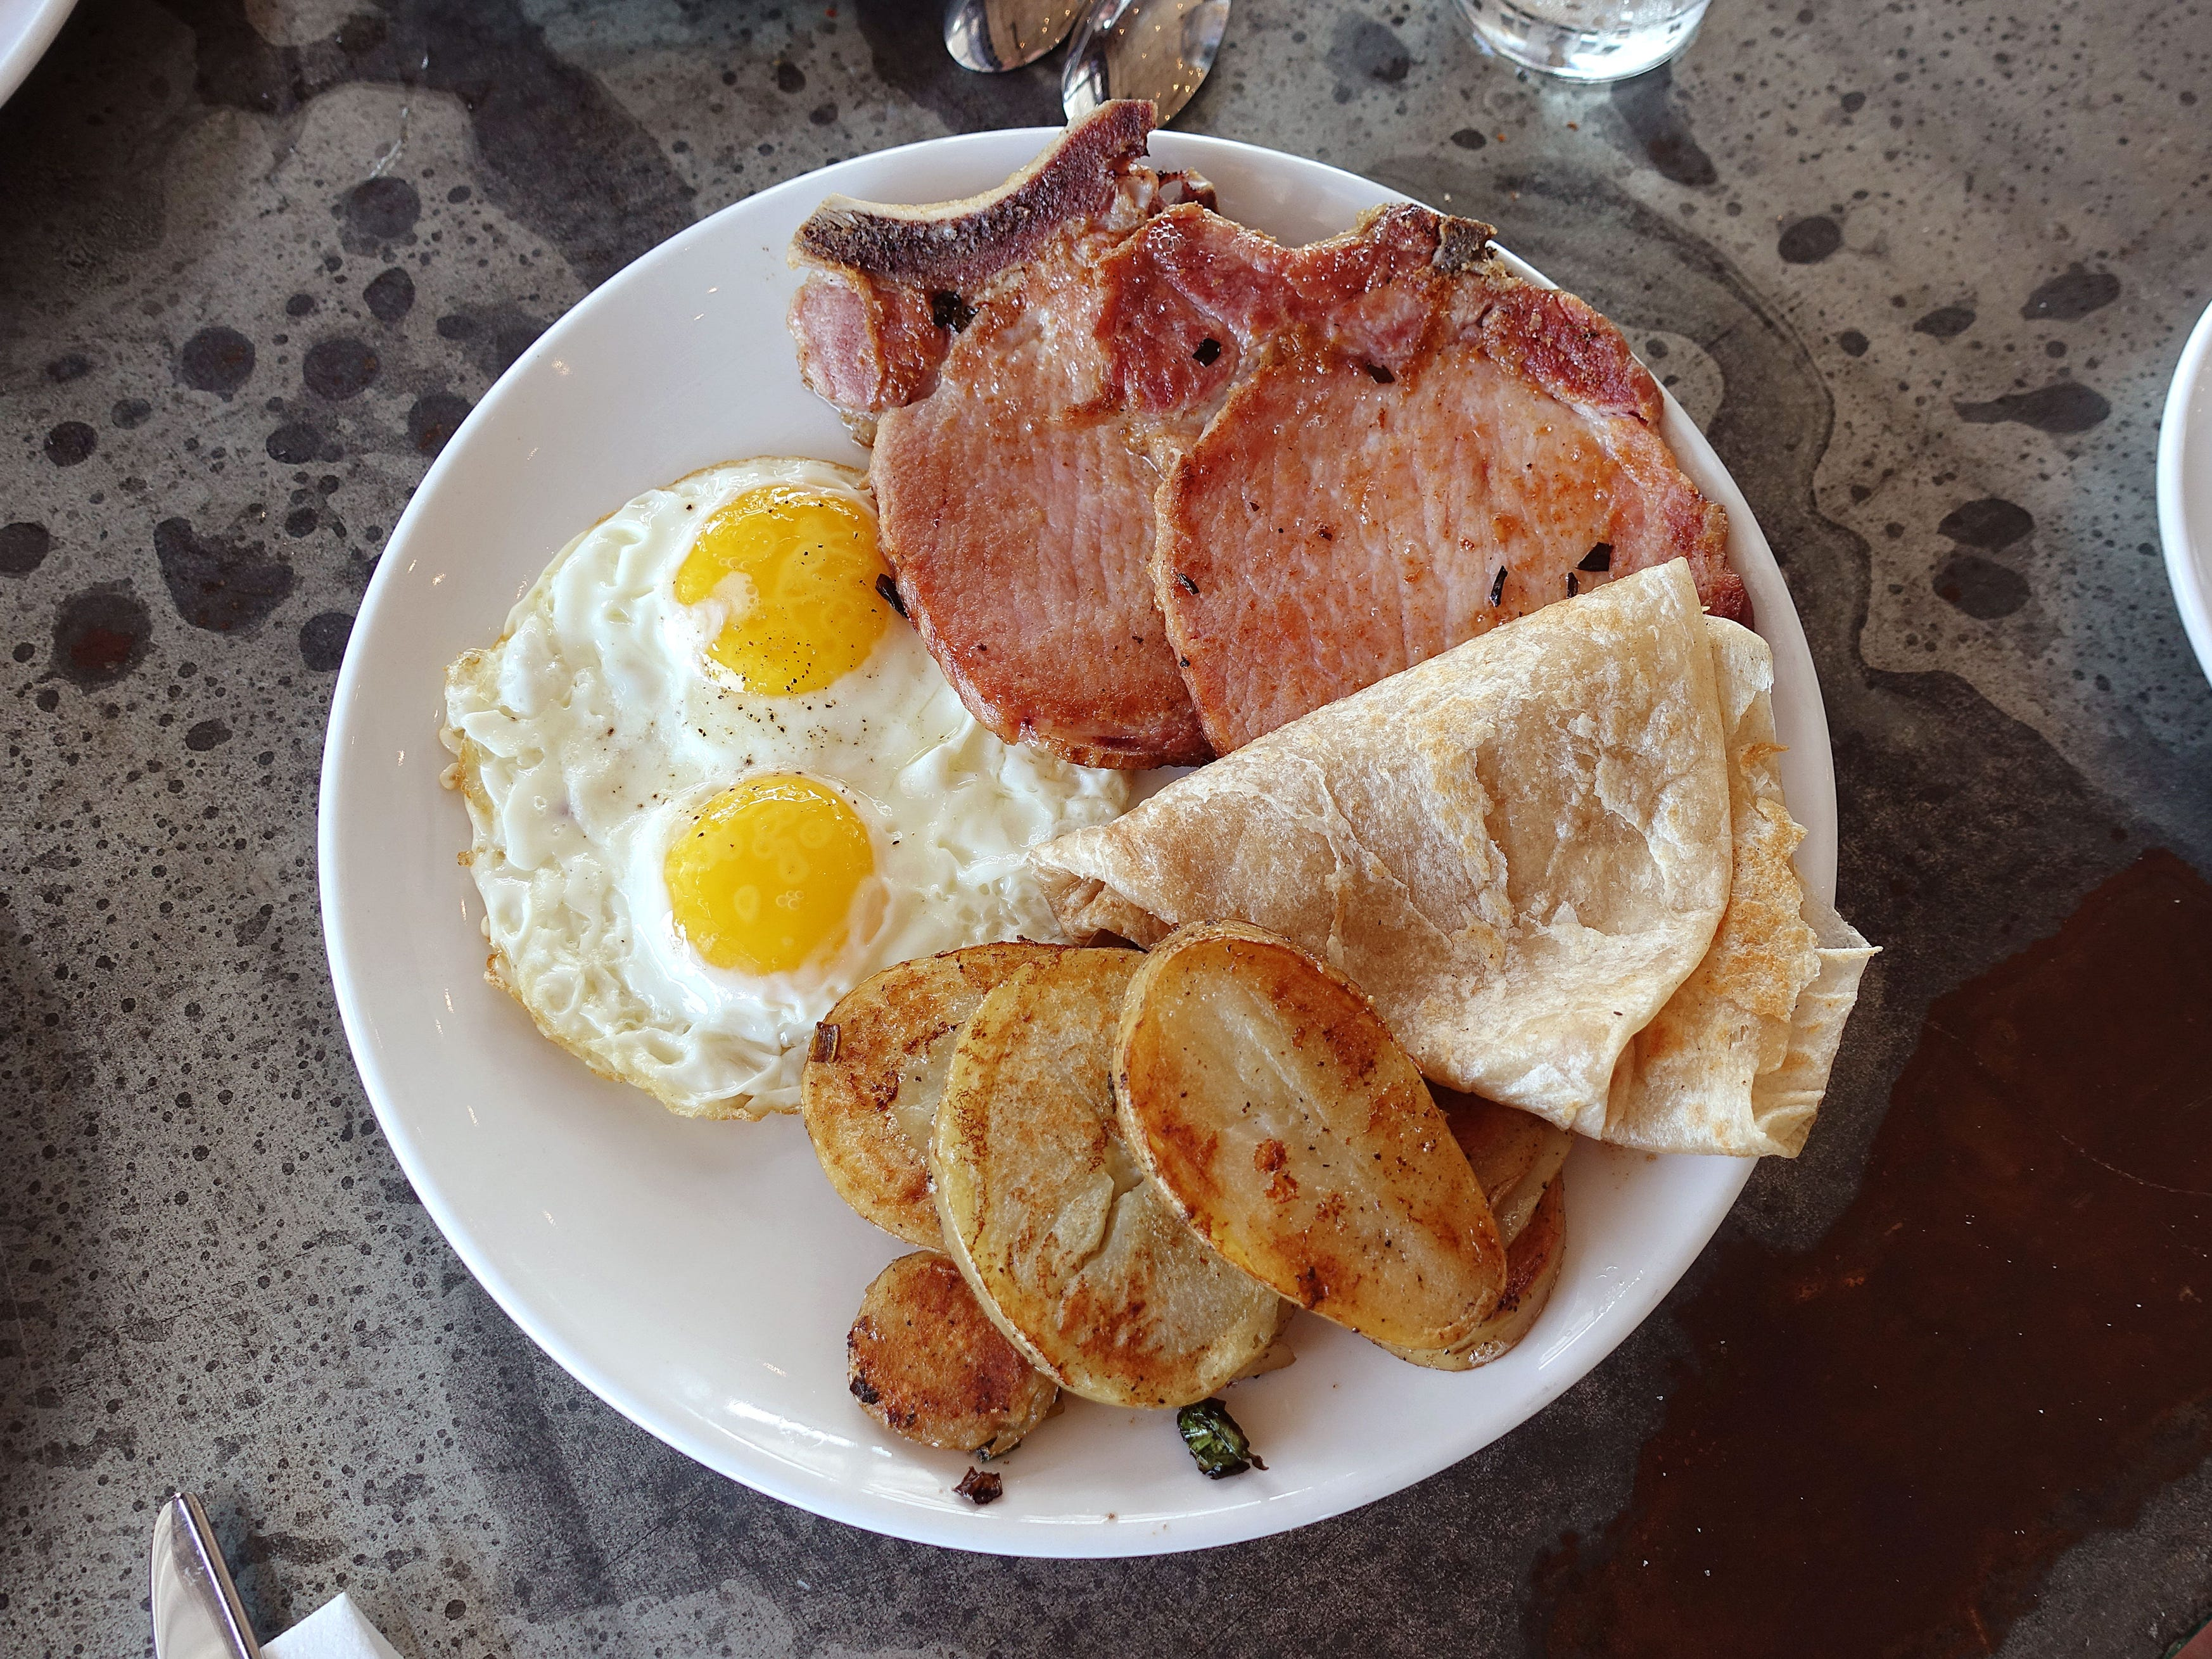 Niman Ranch pork chops with eggs, potatoes and flour tortillas at Roland's Cafe Market Bar.